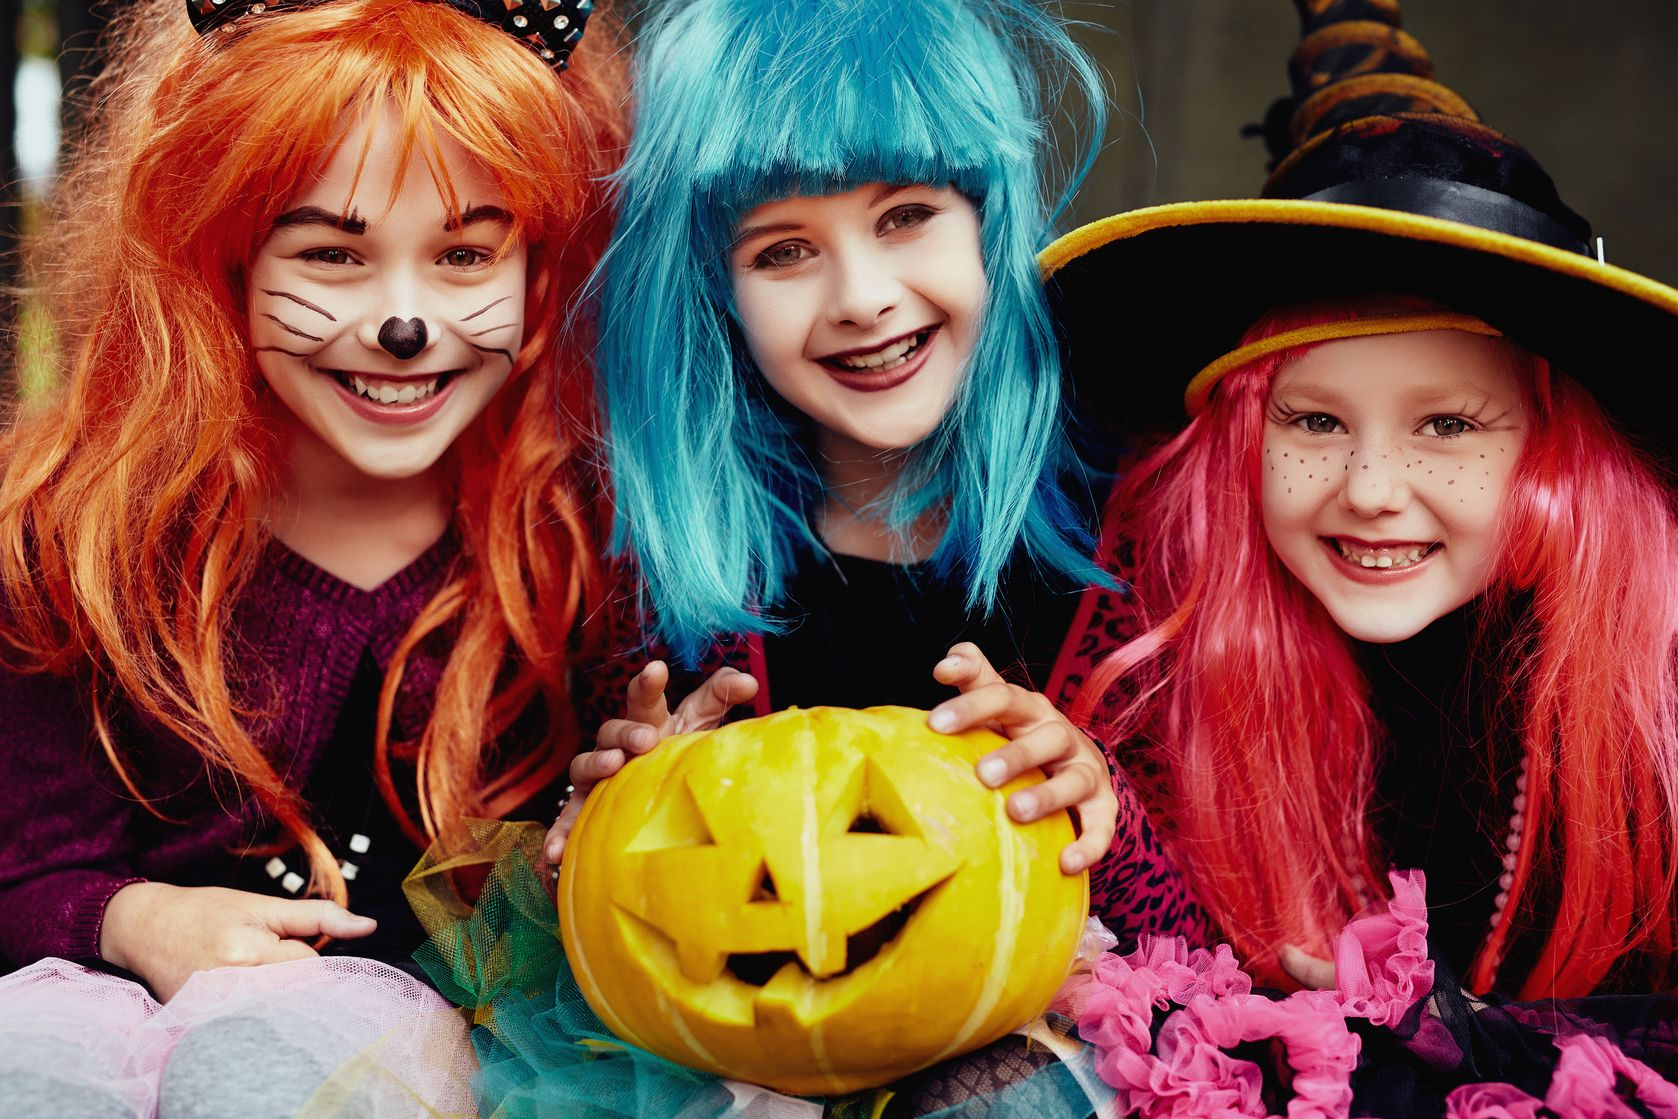 group of girls in halloween costumes looking at camera with smiles - Halloween Costumes Three Girls